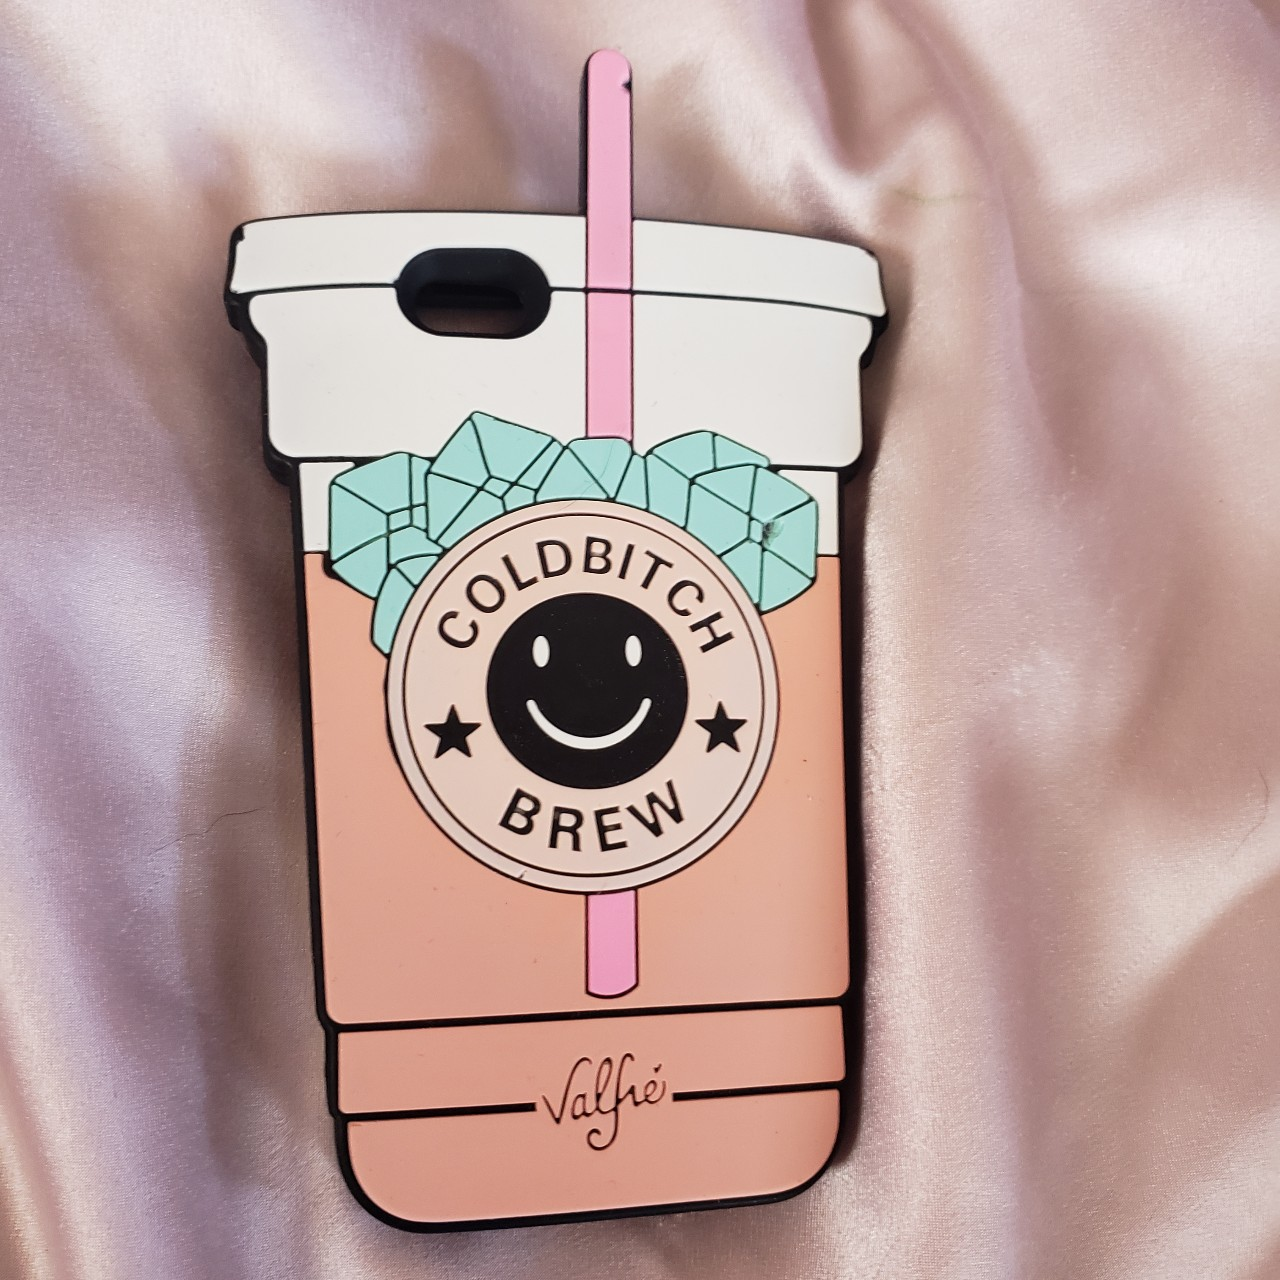 Selling my Valfre